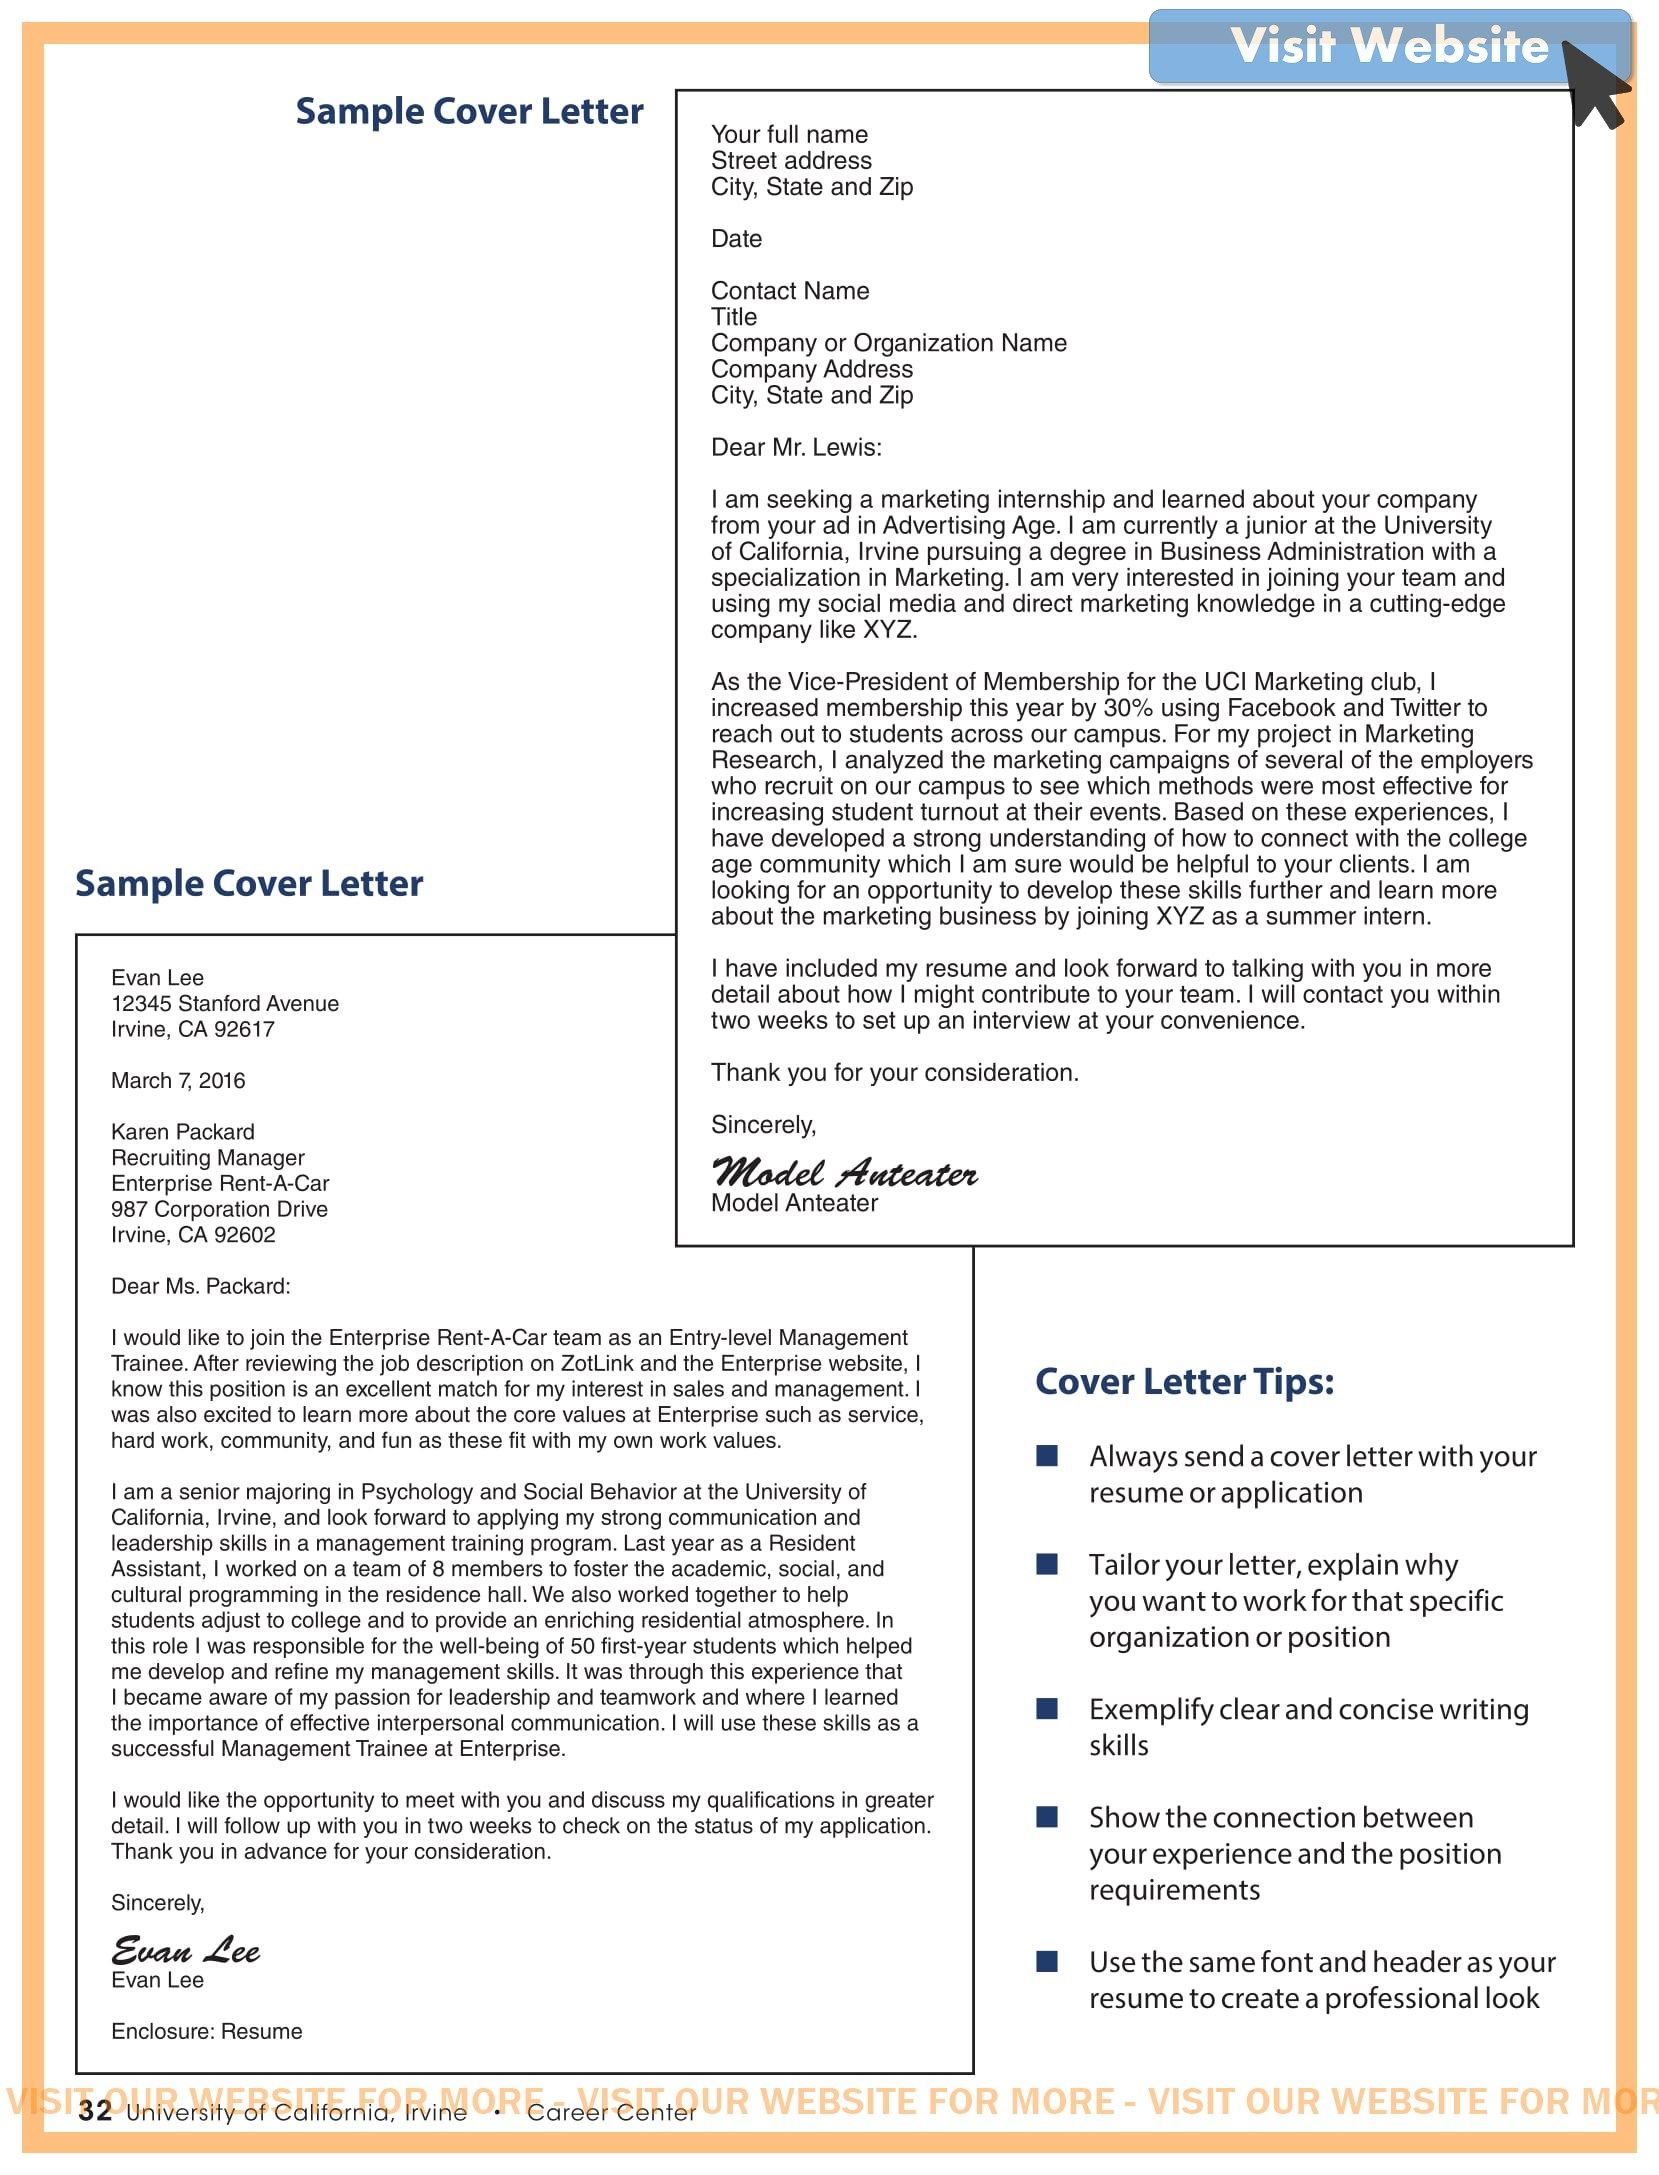 executive assistant cover letter in 2020 Cover letter